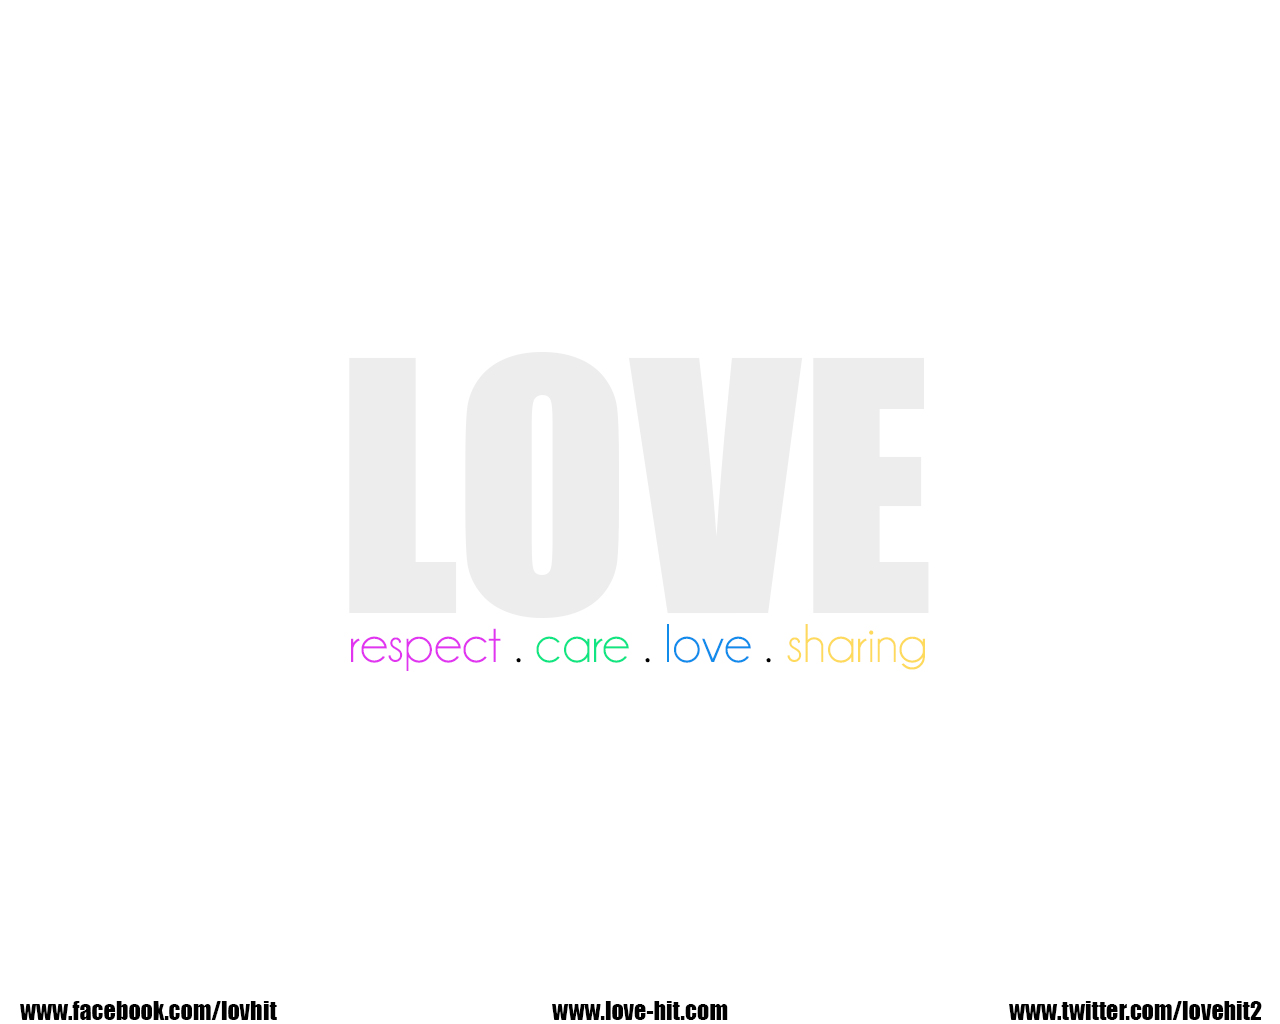 Love is respect care love and share